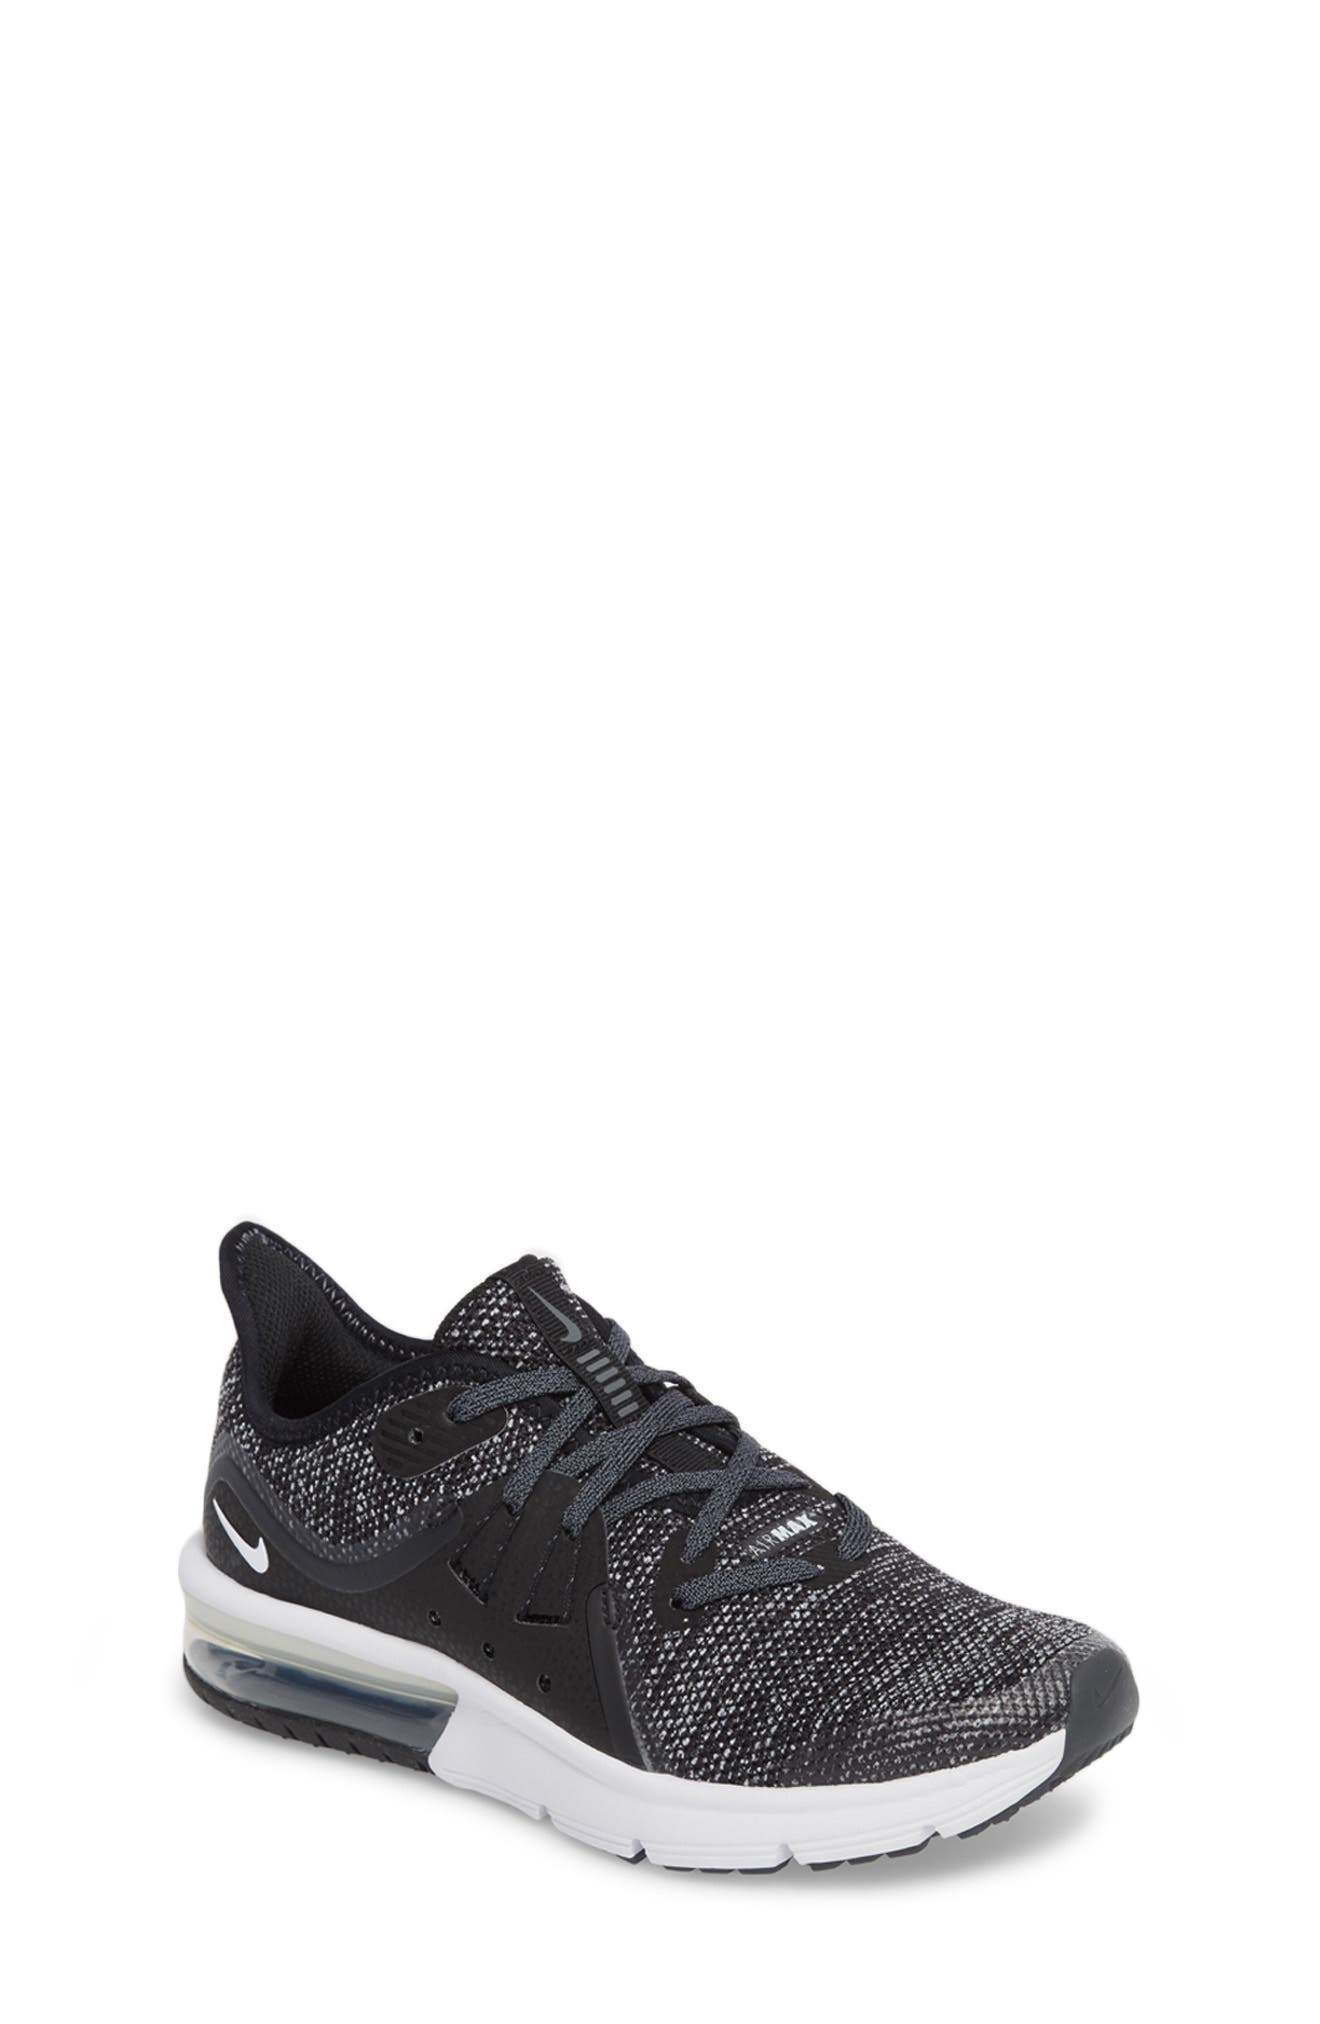 Air Max Sequent 3 GS Running Shoe,                         Main,                         color, BLACK/ WHITE/ DARK GREY